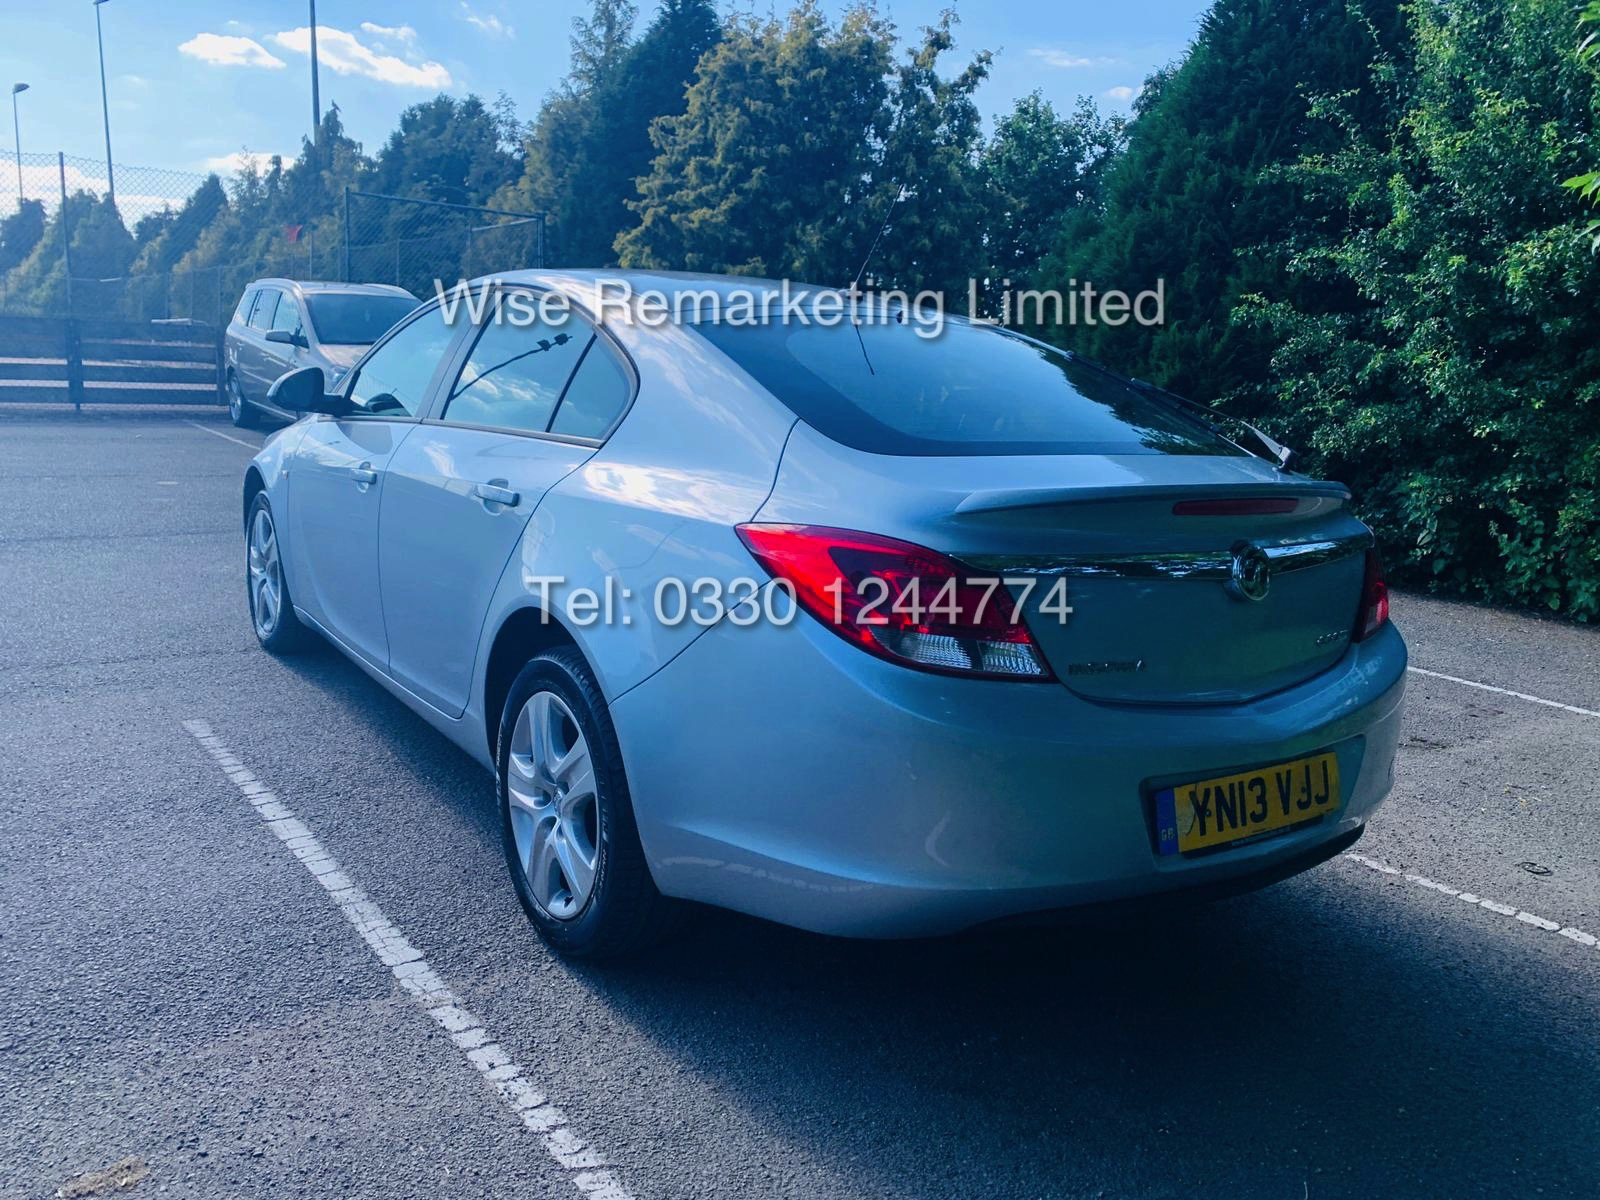 VAUXHALL INSIGNIA 2.0 CDTI ECOFLEX ES 2013 *FSH* 1 OWNER FROM NEW - Image 8 of 30